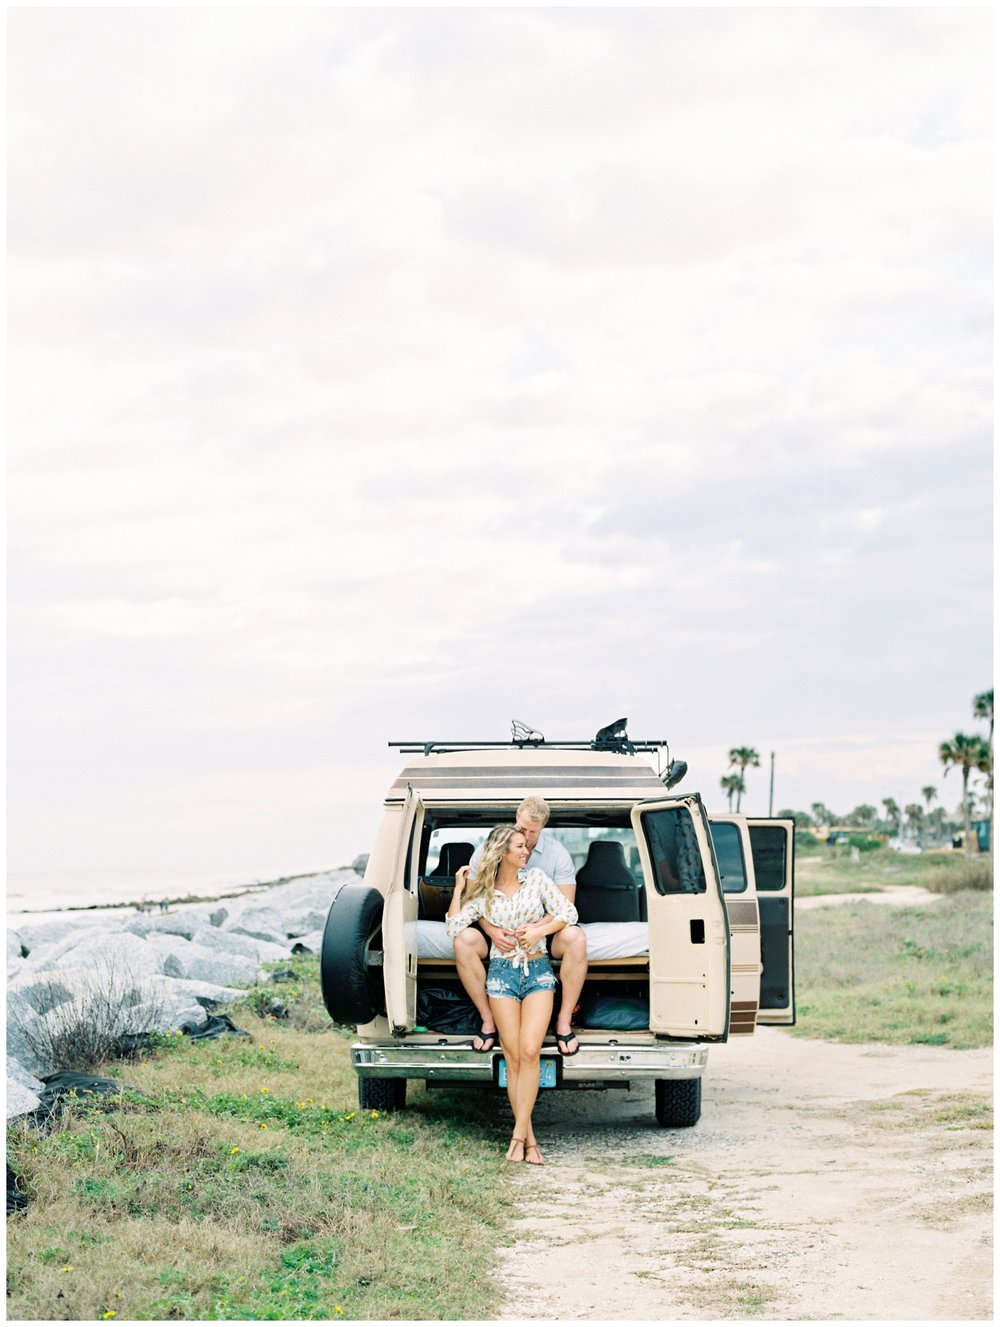 Lisa Silva Photography -Beachy Lifestyle Engagement Session in Palm Coast Florida - Jacksonville Film Photograpgers_0003.jpg